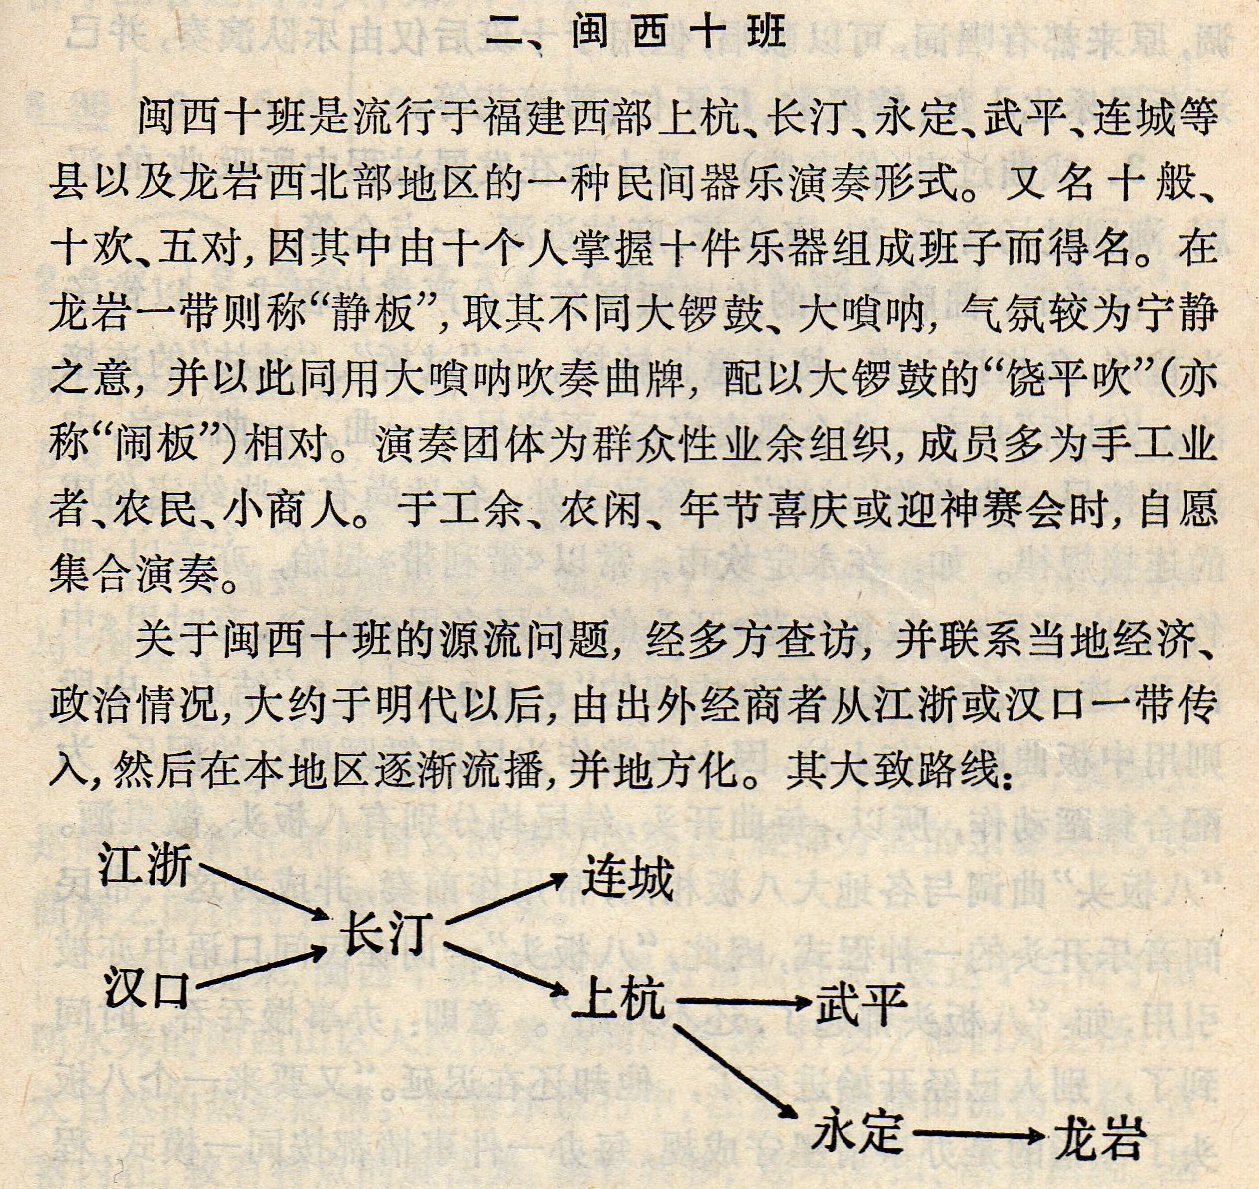 Liu and Wang shiban route